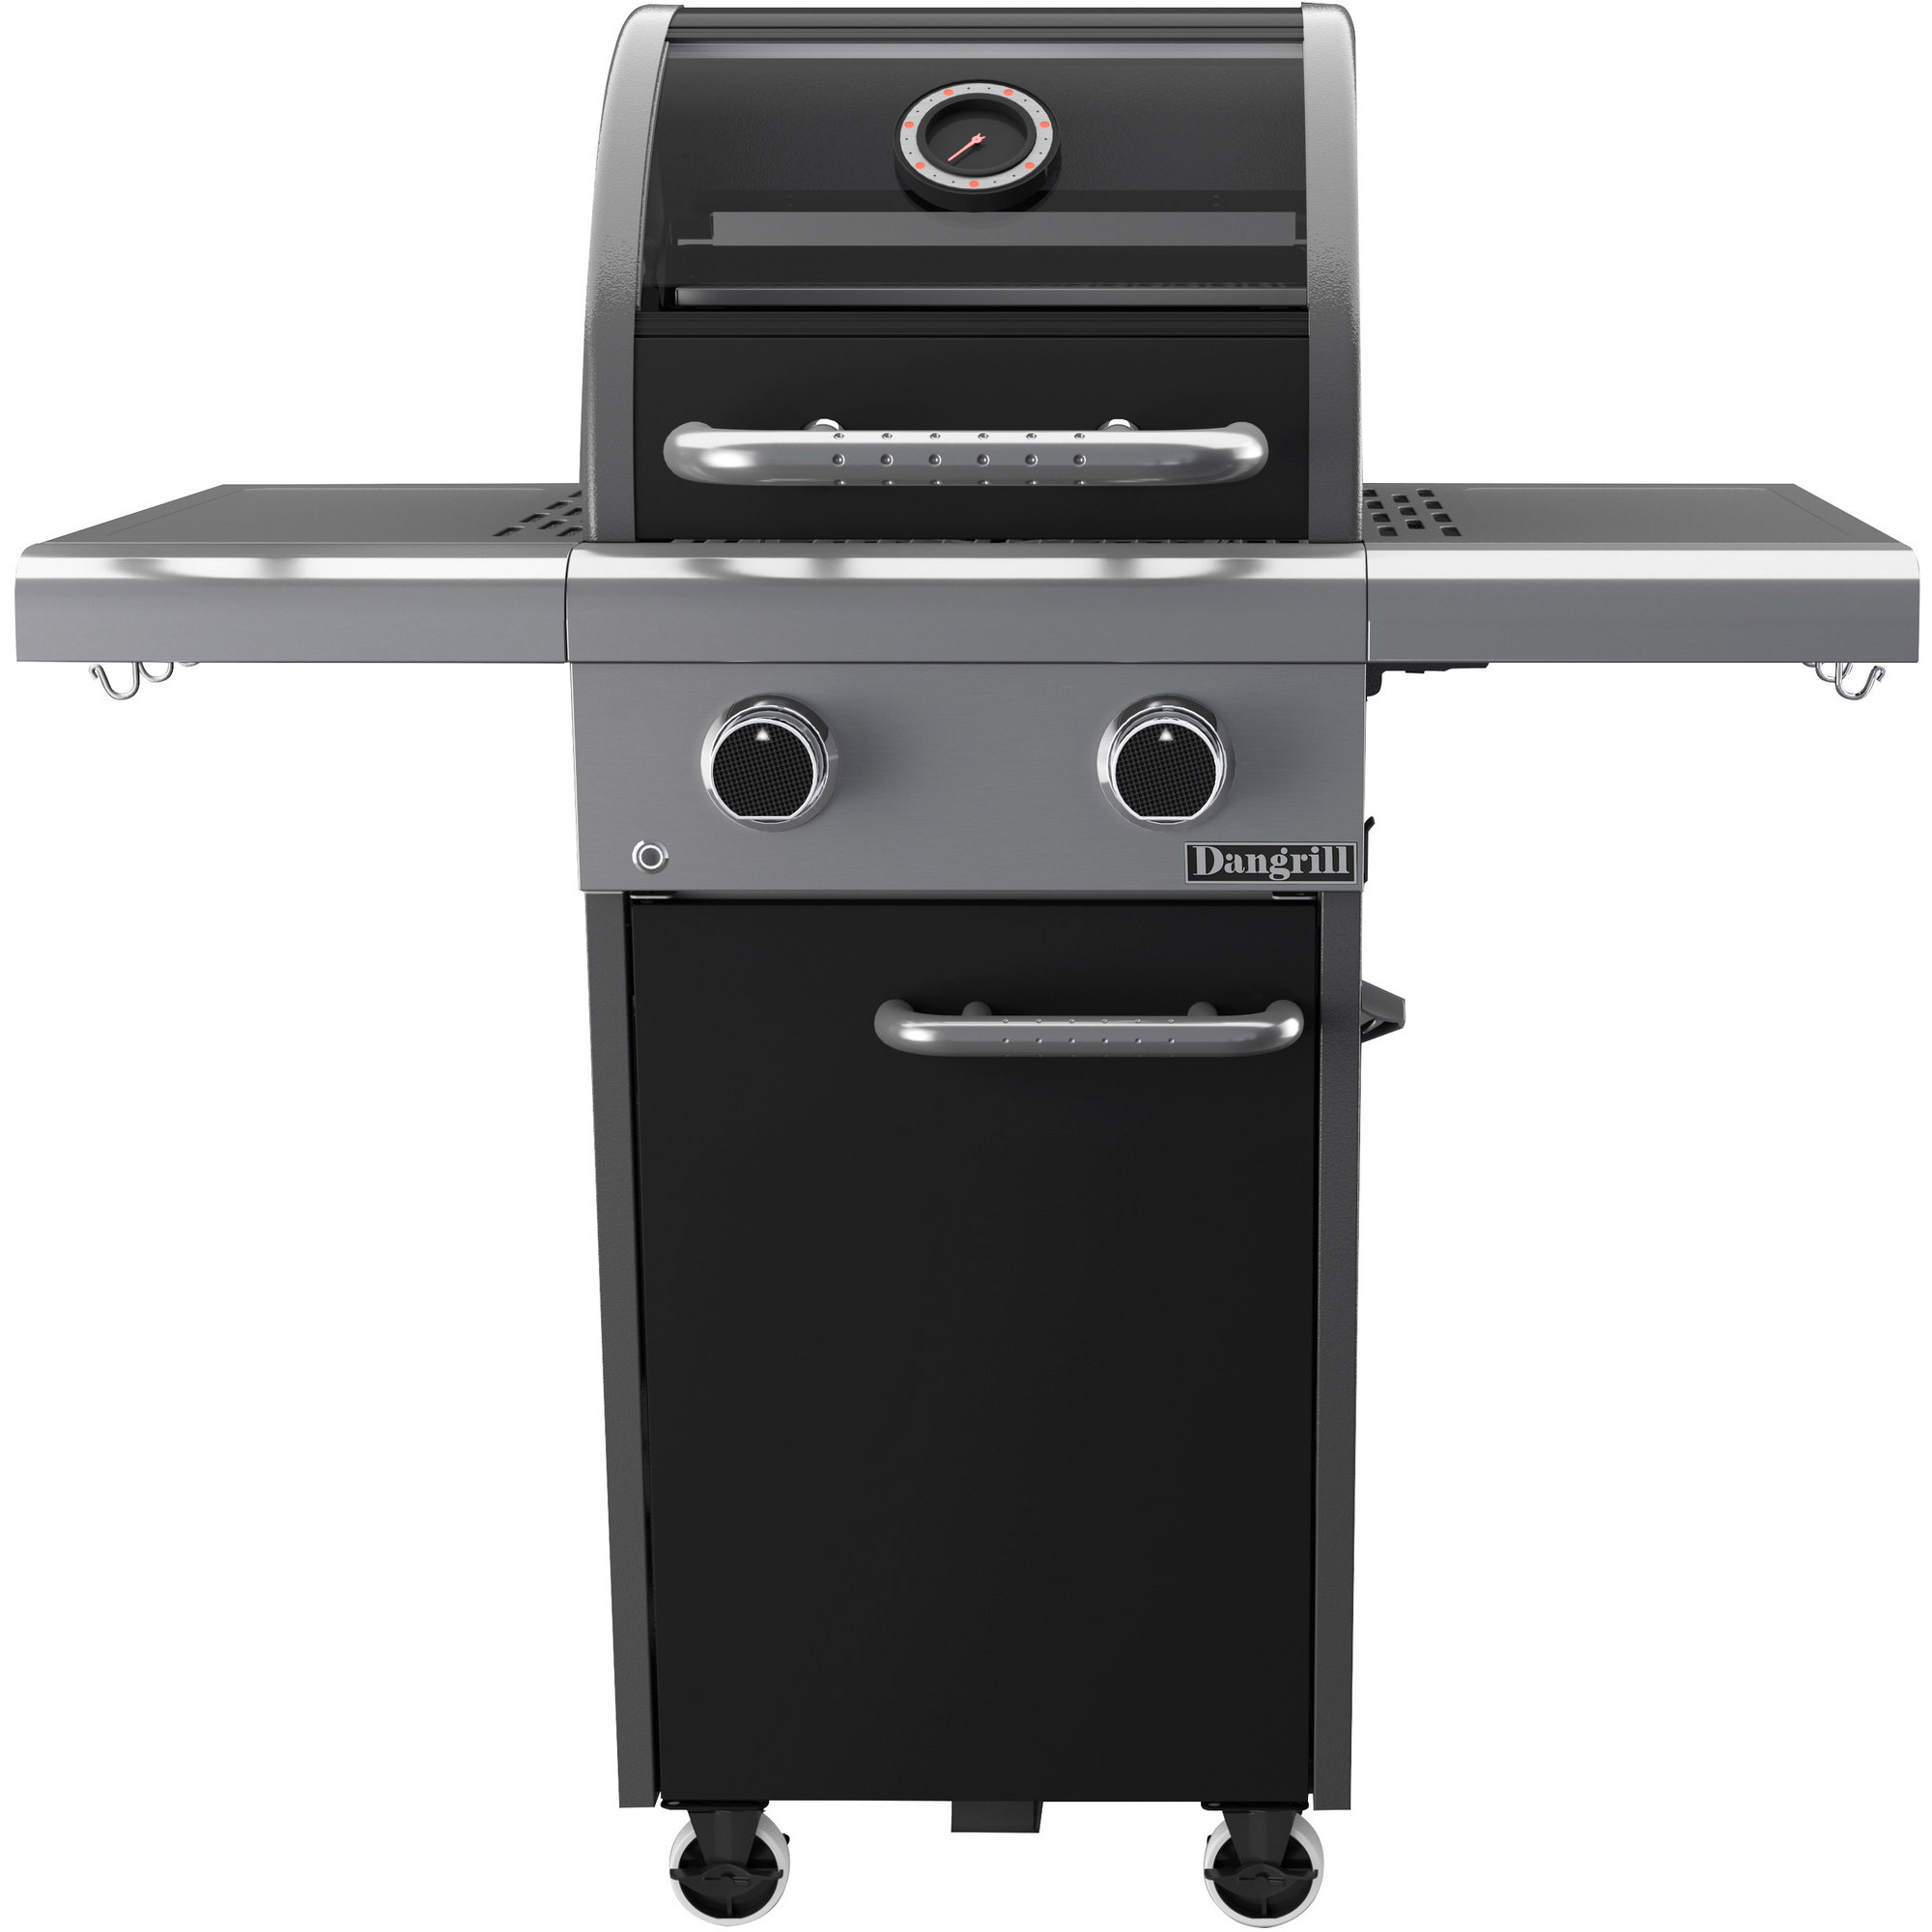 Dangrill Odin 200 CS gasolgrill